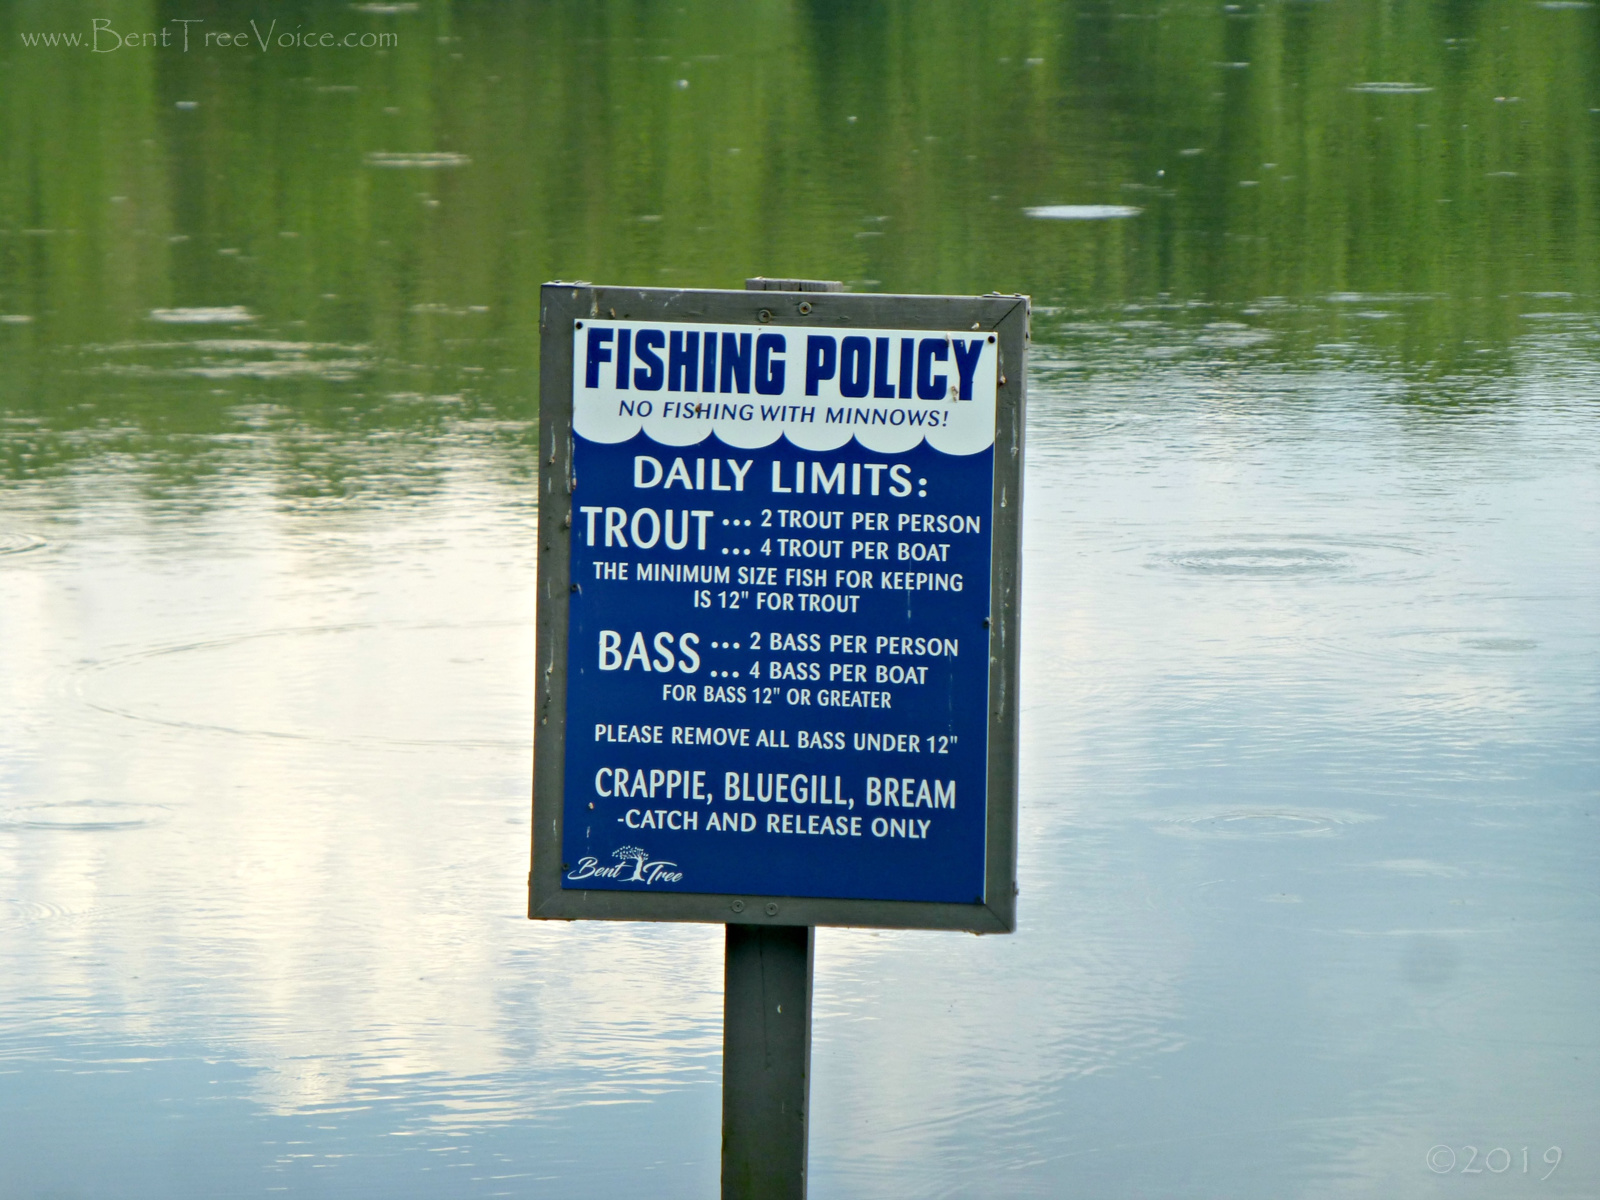 June 17, 2019 - revised Fishing Policy sign